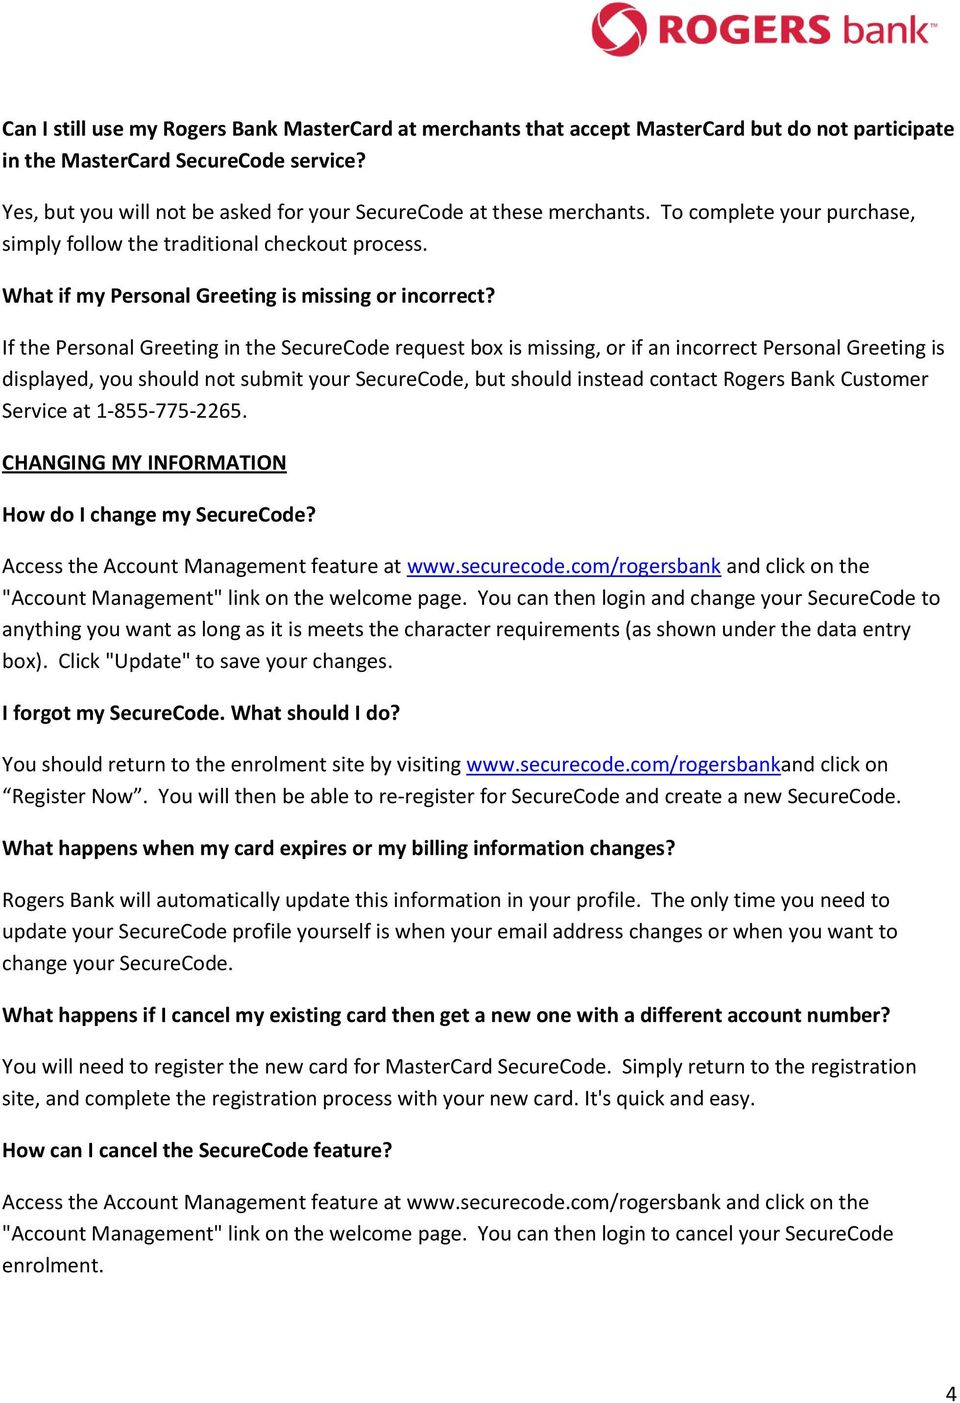 MasterCard SecureCode FAQs - PDF